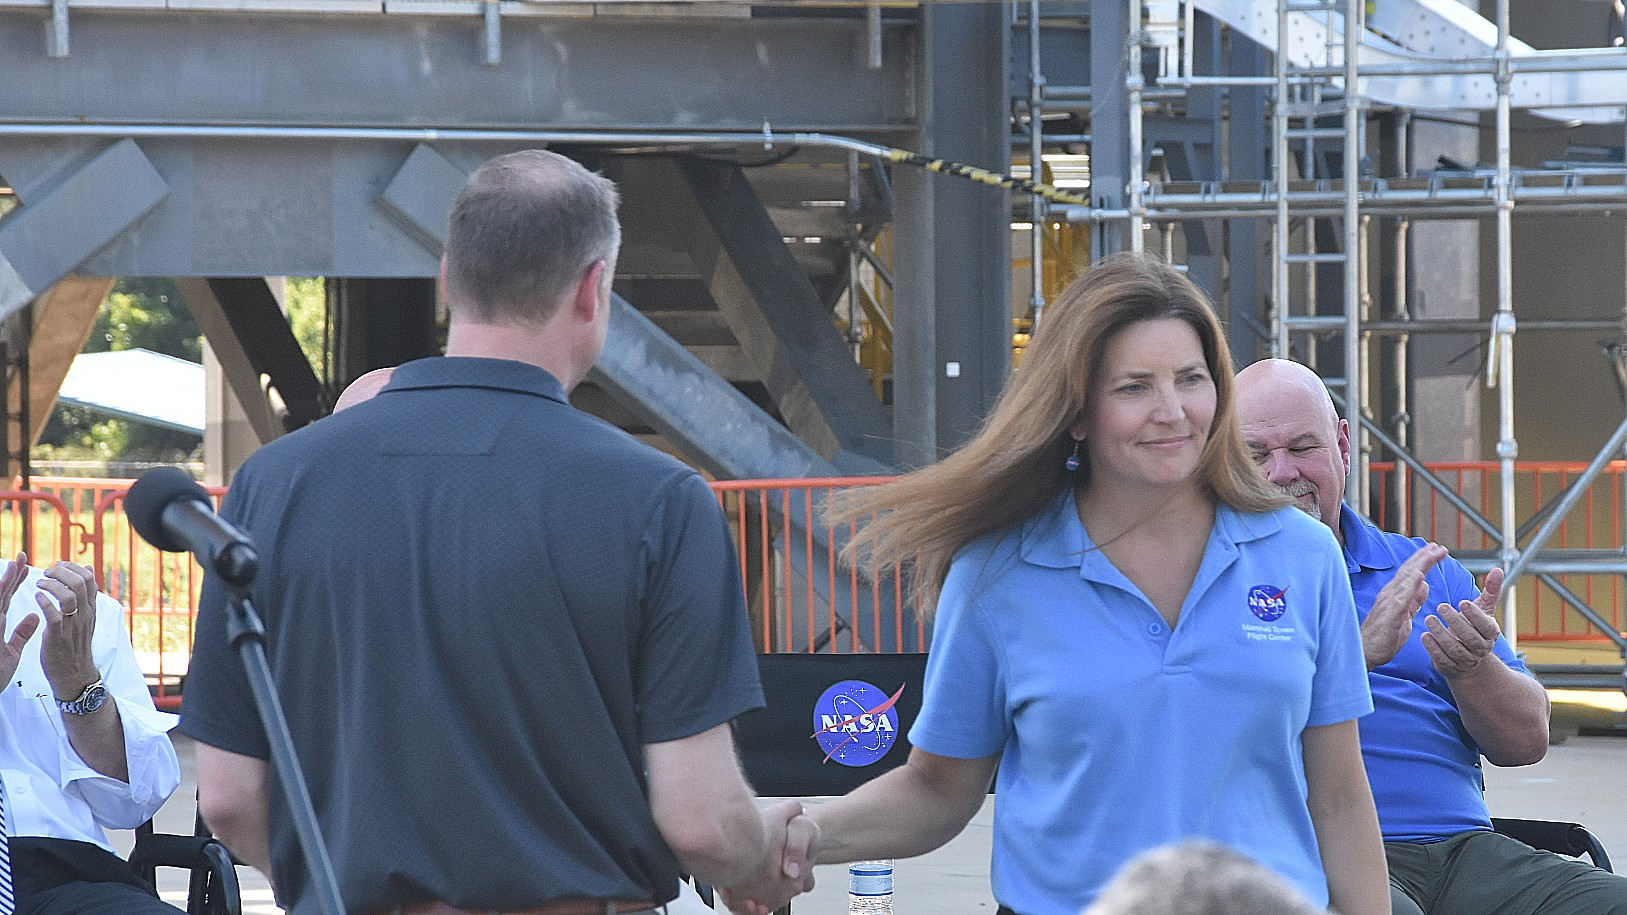 Alabama native ready to lead NASA back to the moon